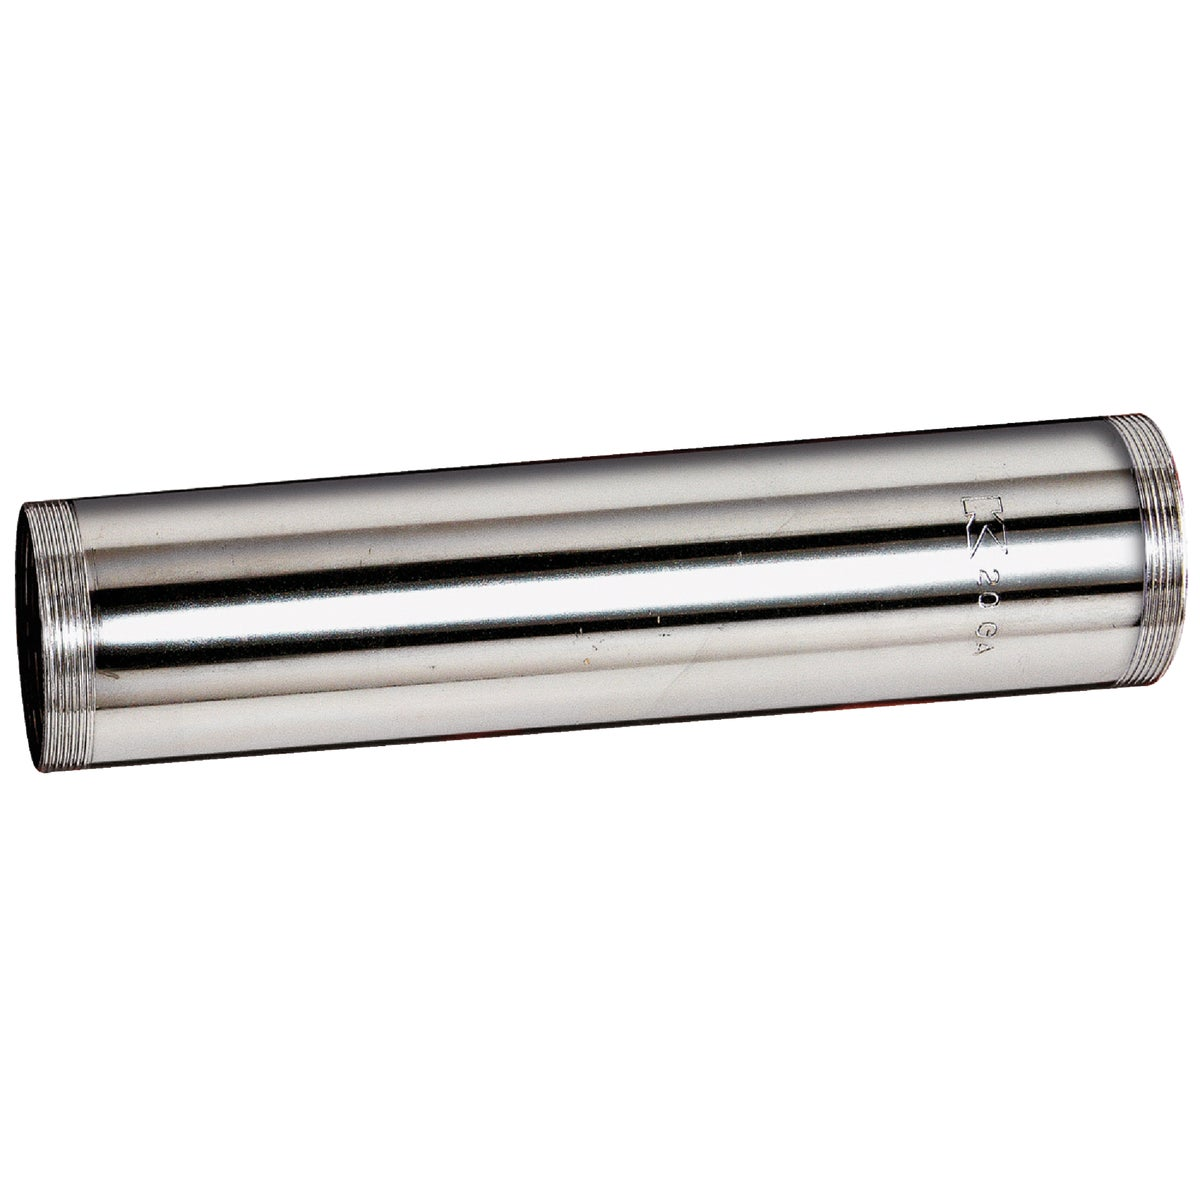 1-1/4X6 THREADED TUBE - 495646 by Plumb Pak/keeney Mfg